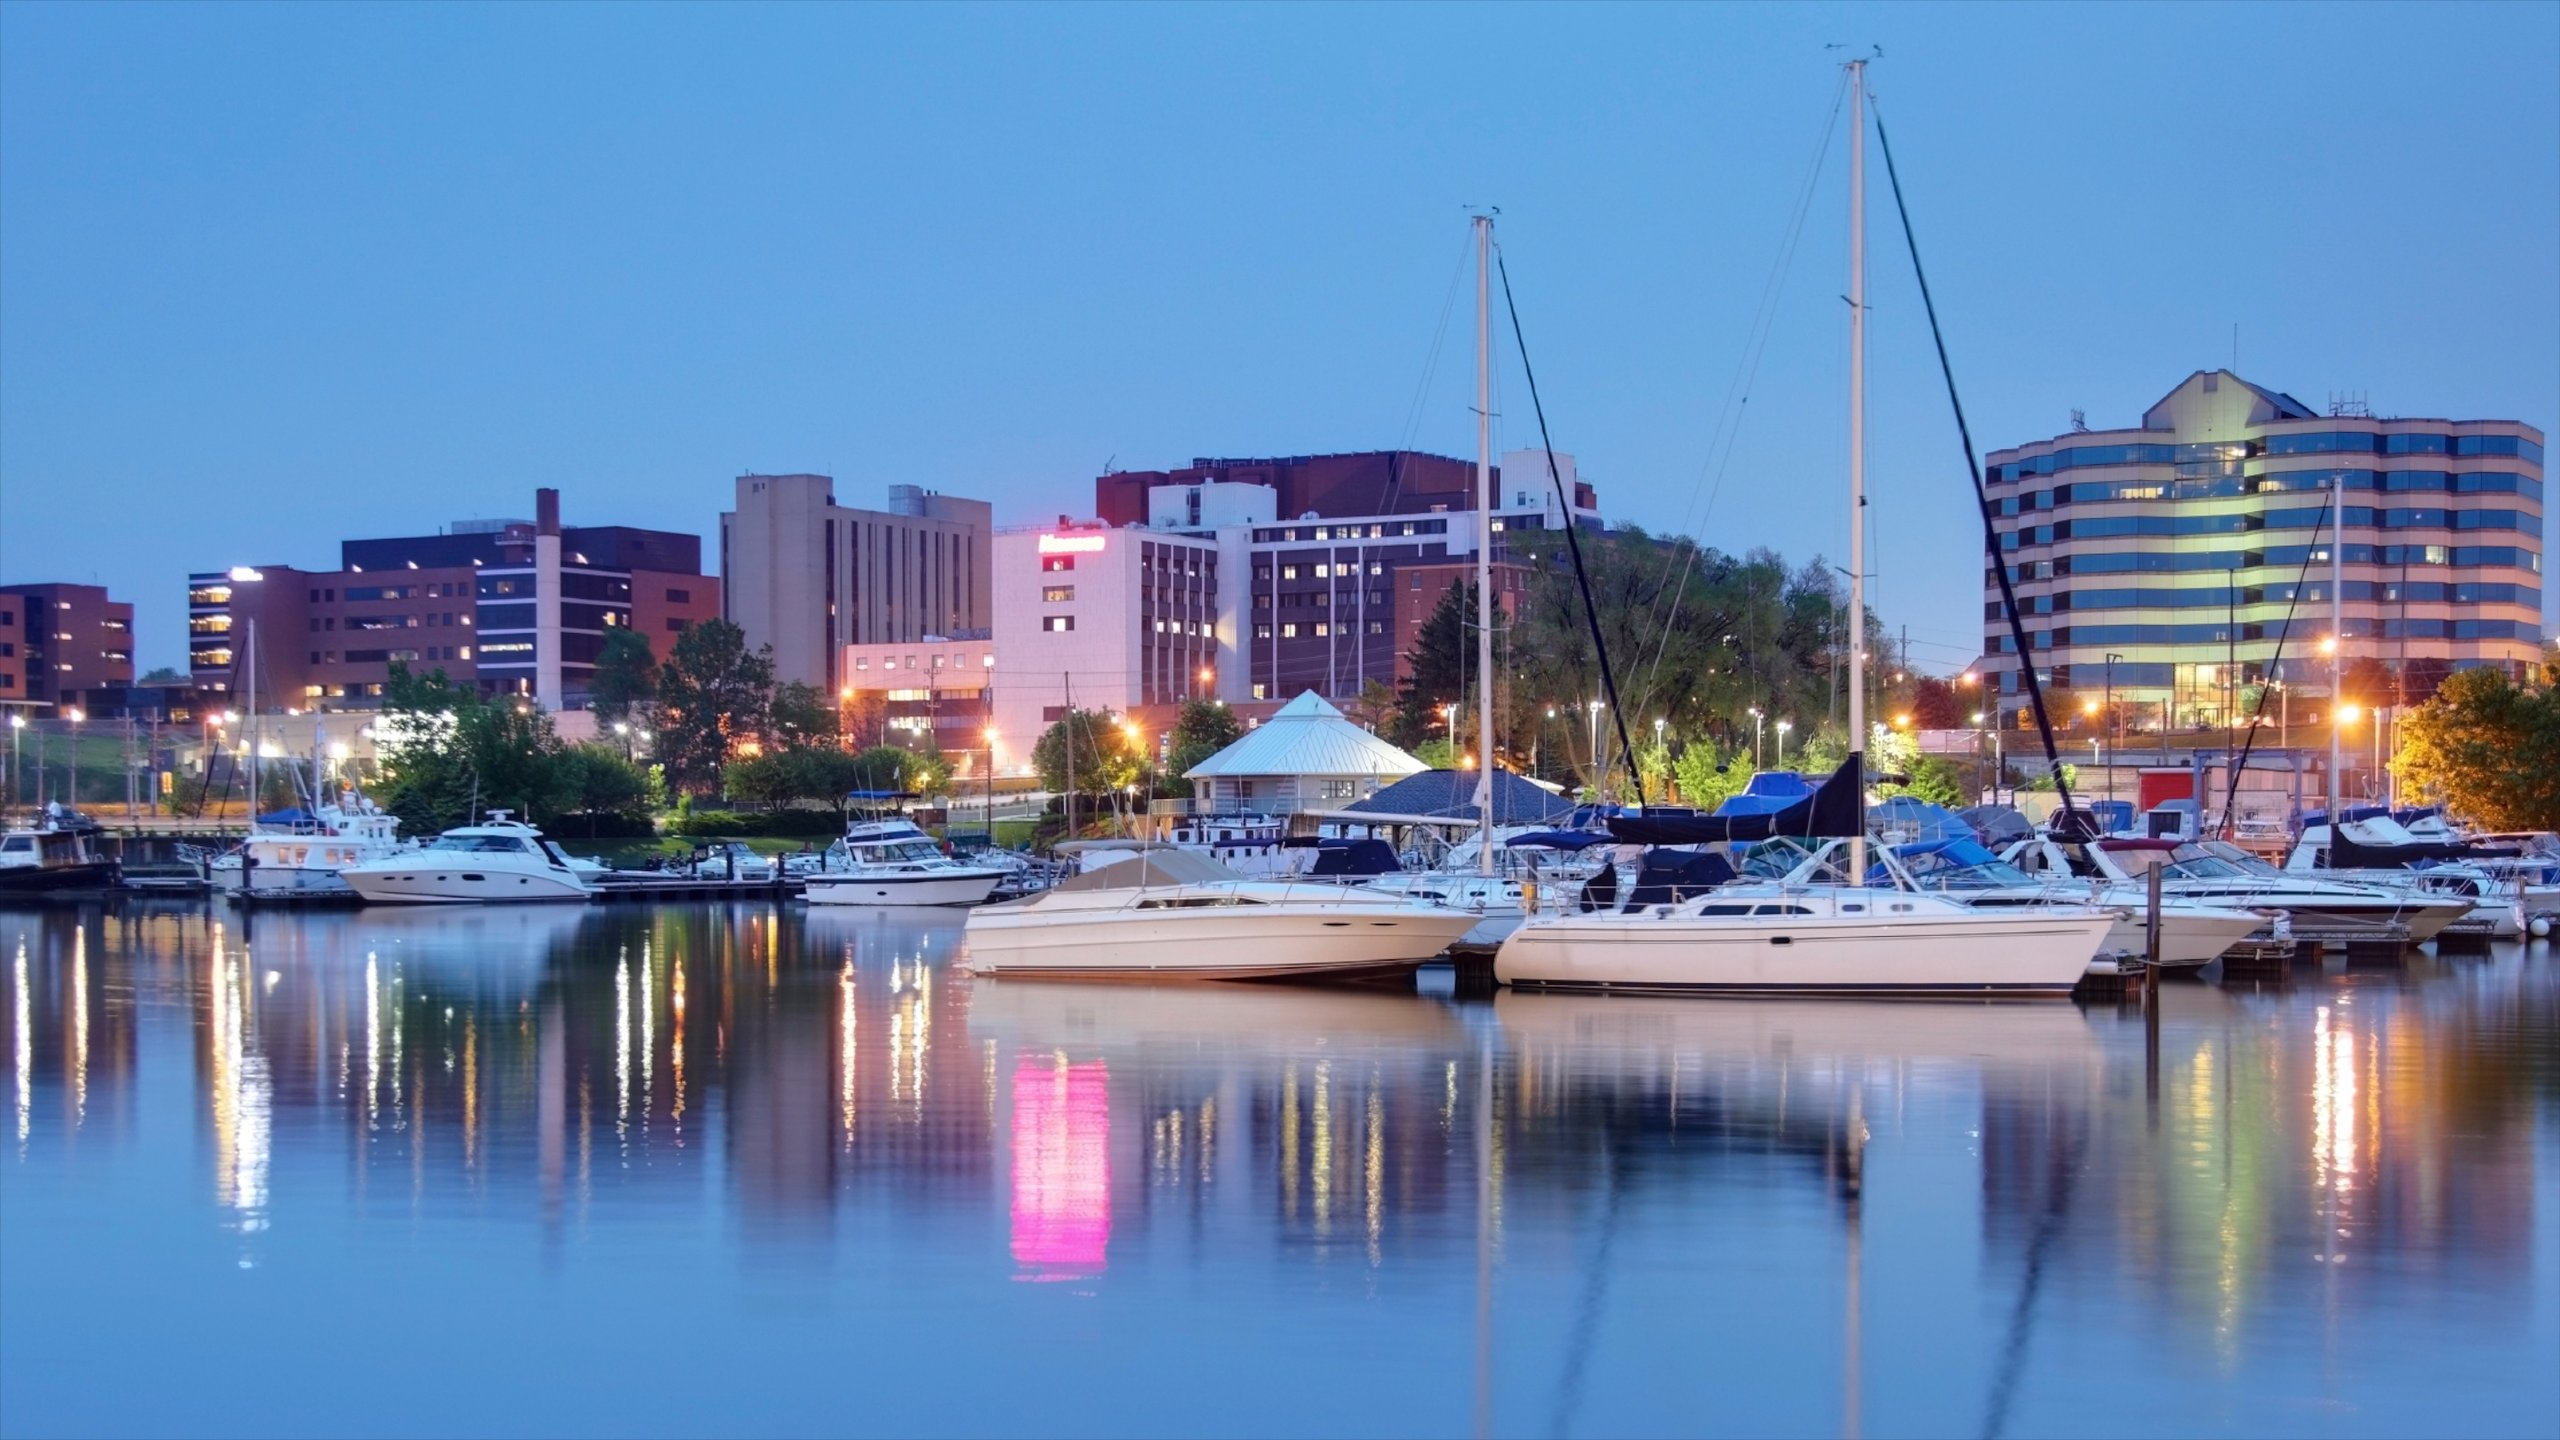 The 10 Best Hotels in Erie, Pennsylvania $58 for 2019 | Expedia